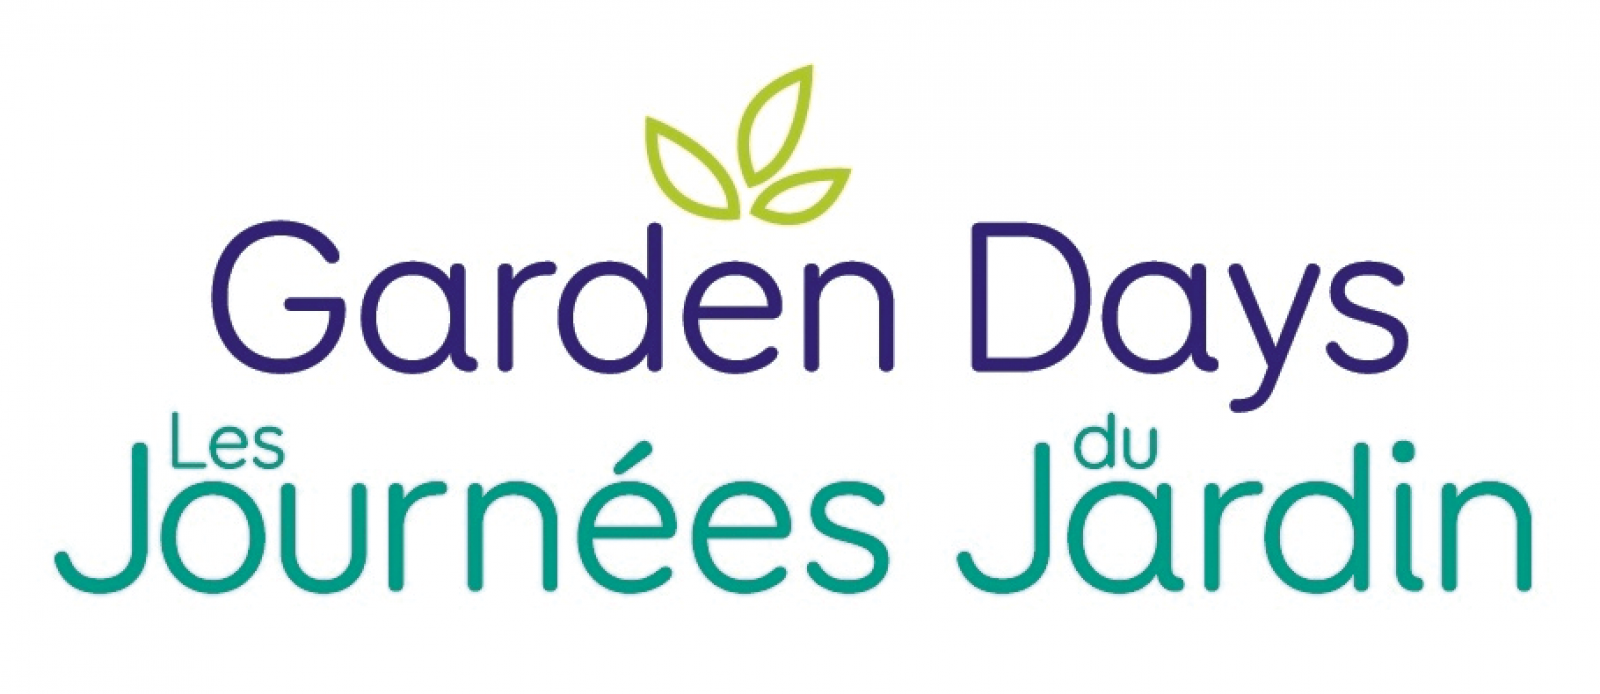 Garden Days coming this June